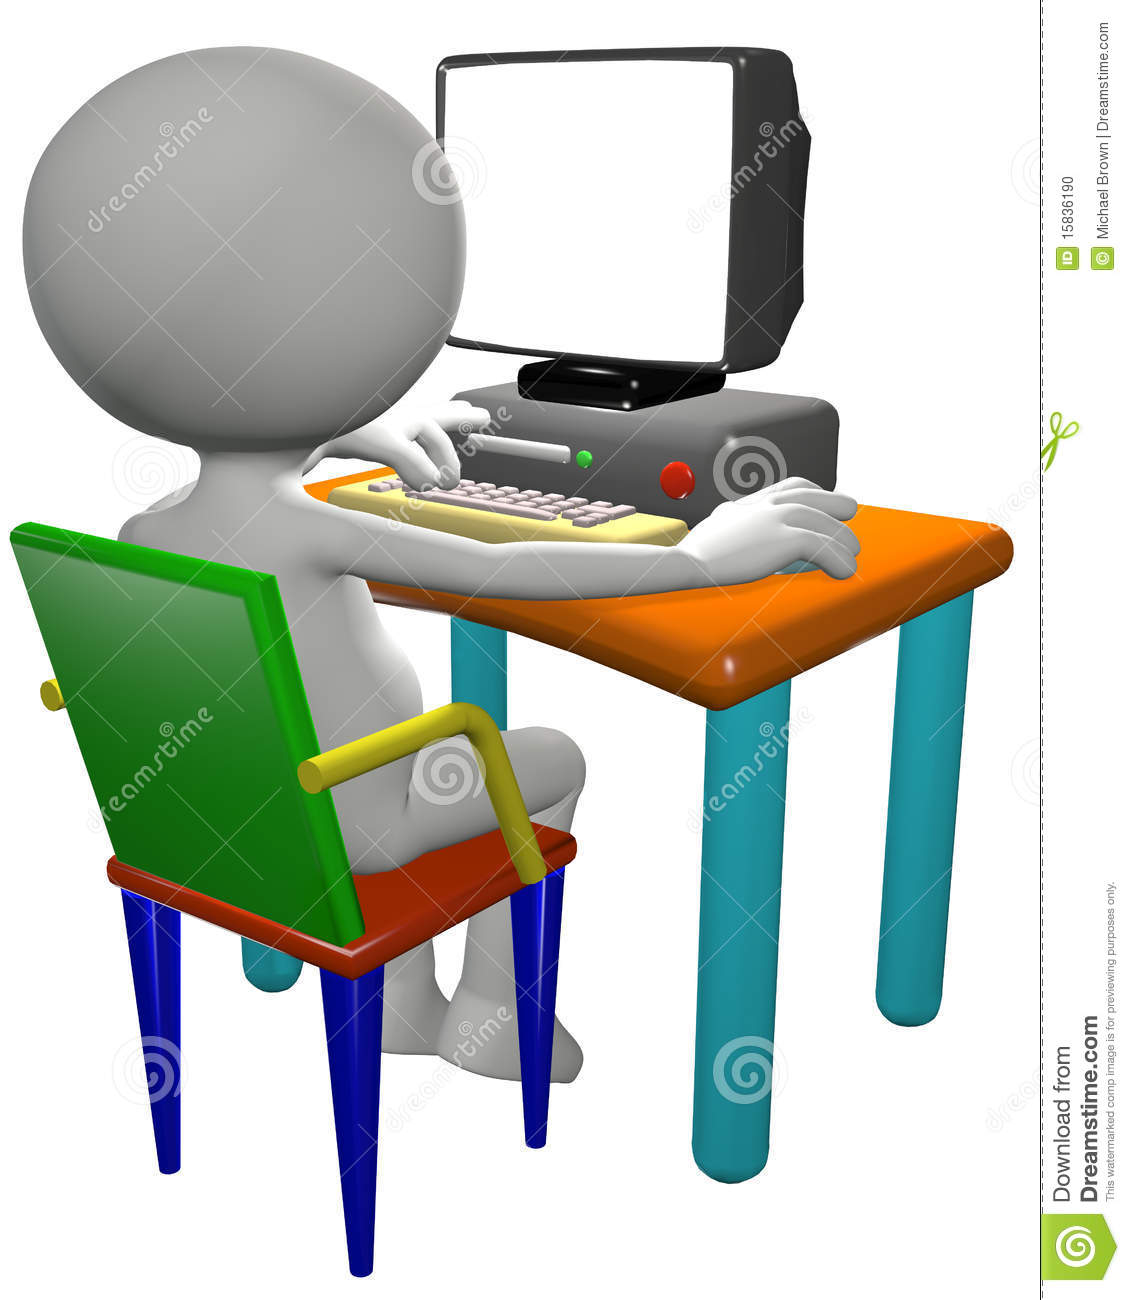 Cartoon 3D PC user works on a computer desk, useful background copy